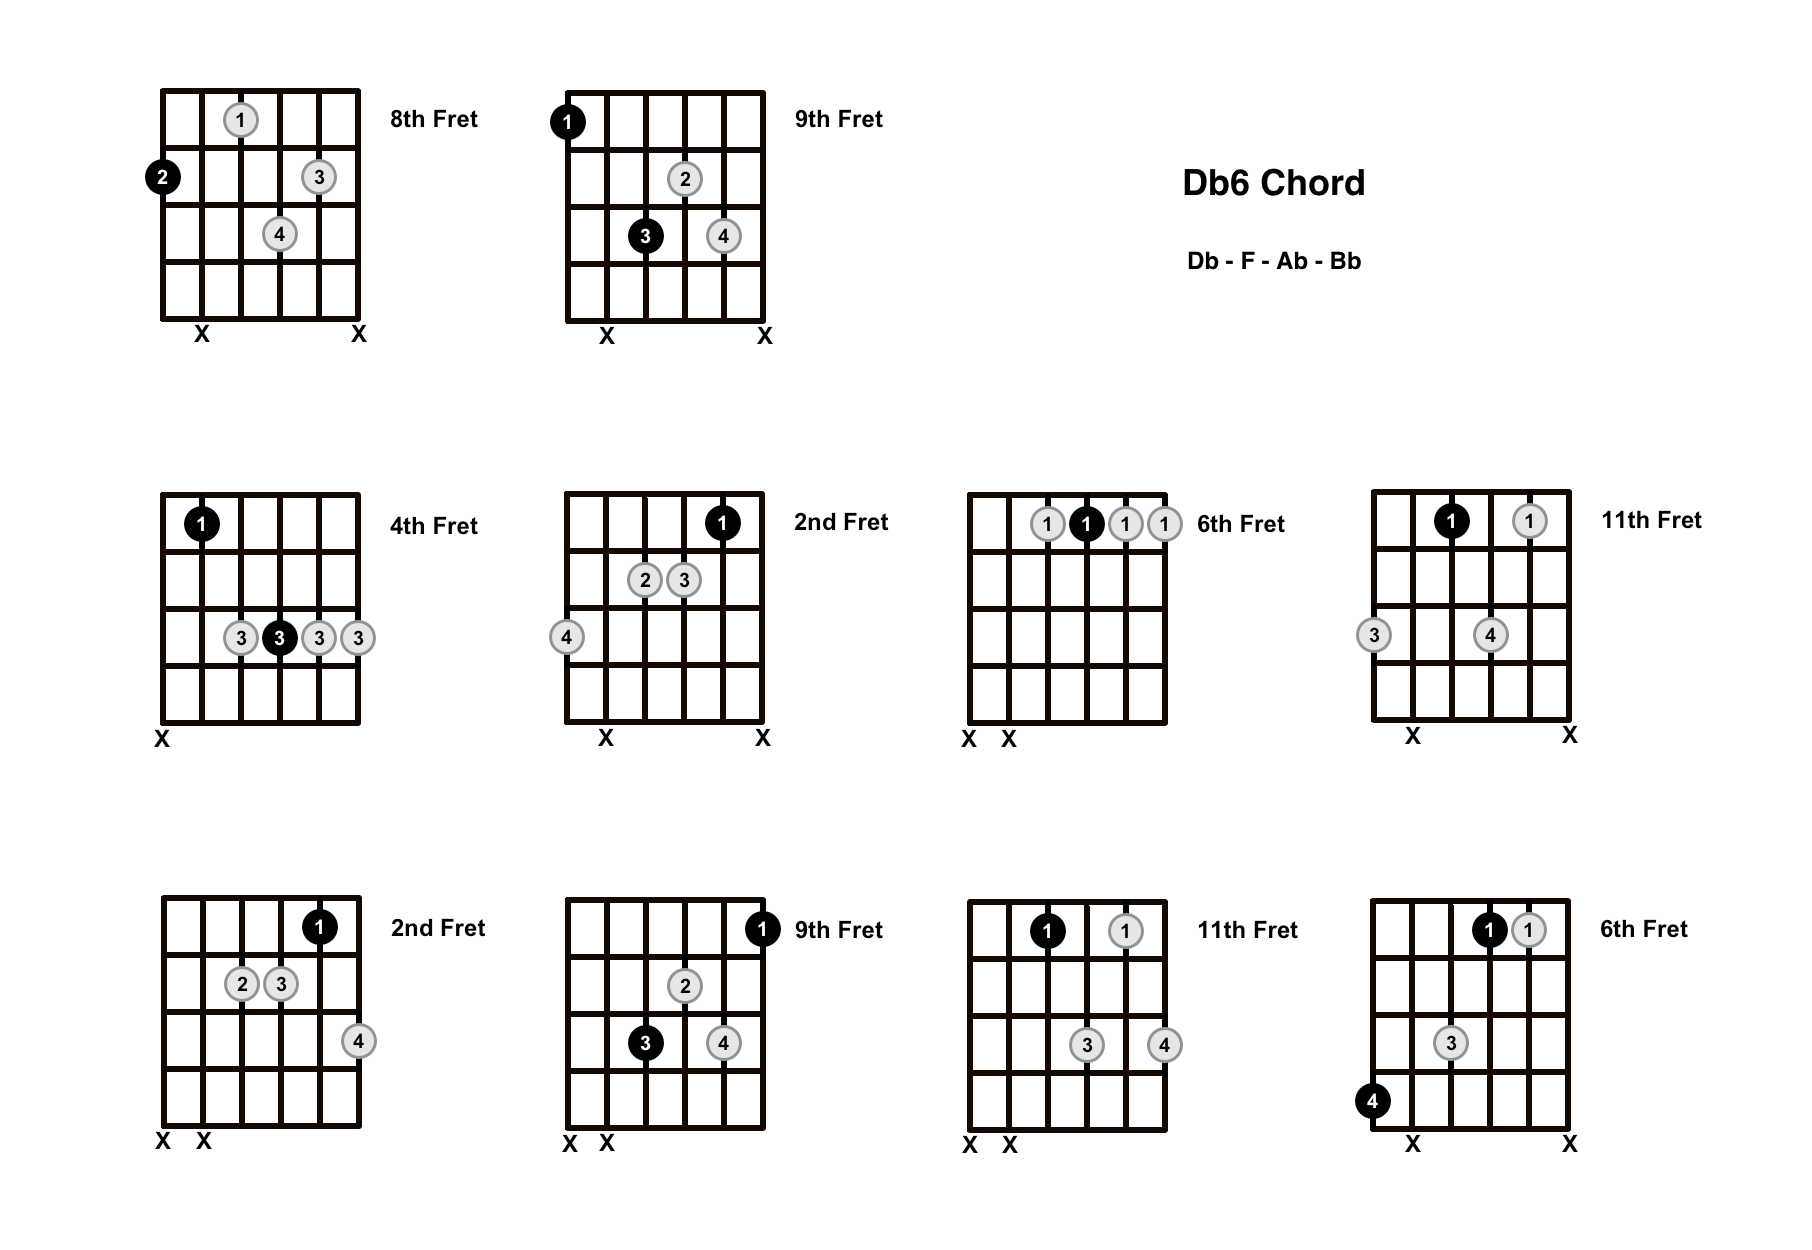 Db6 Chord On The Guitar (D Flat Major 6) – Diagrams, Finger Positions and Theory